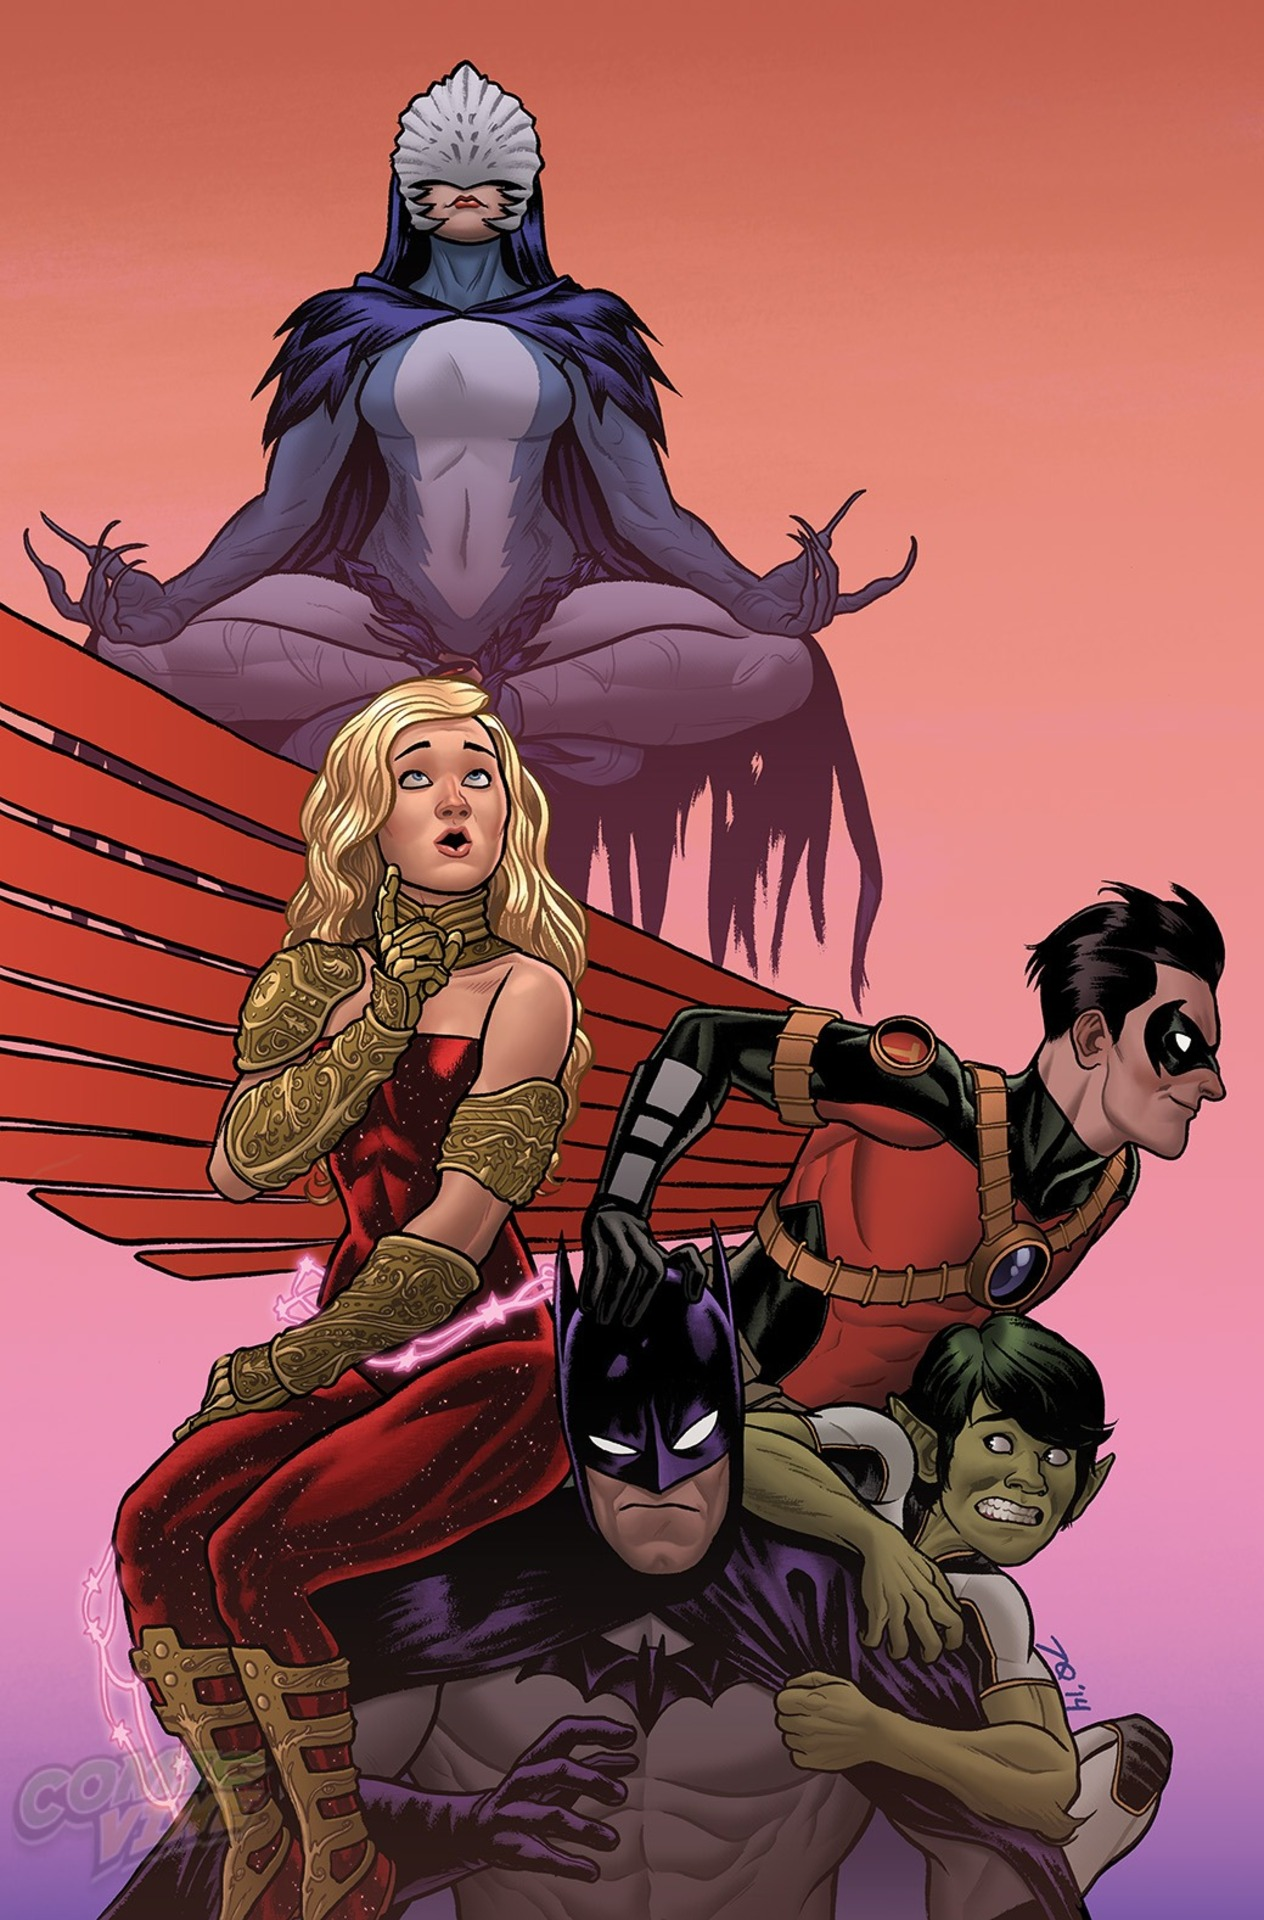 Variant cover art for 'Teen Titans' 2014 #1 by Joe Quinones